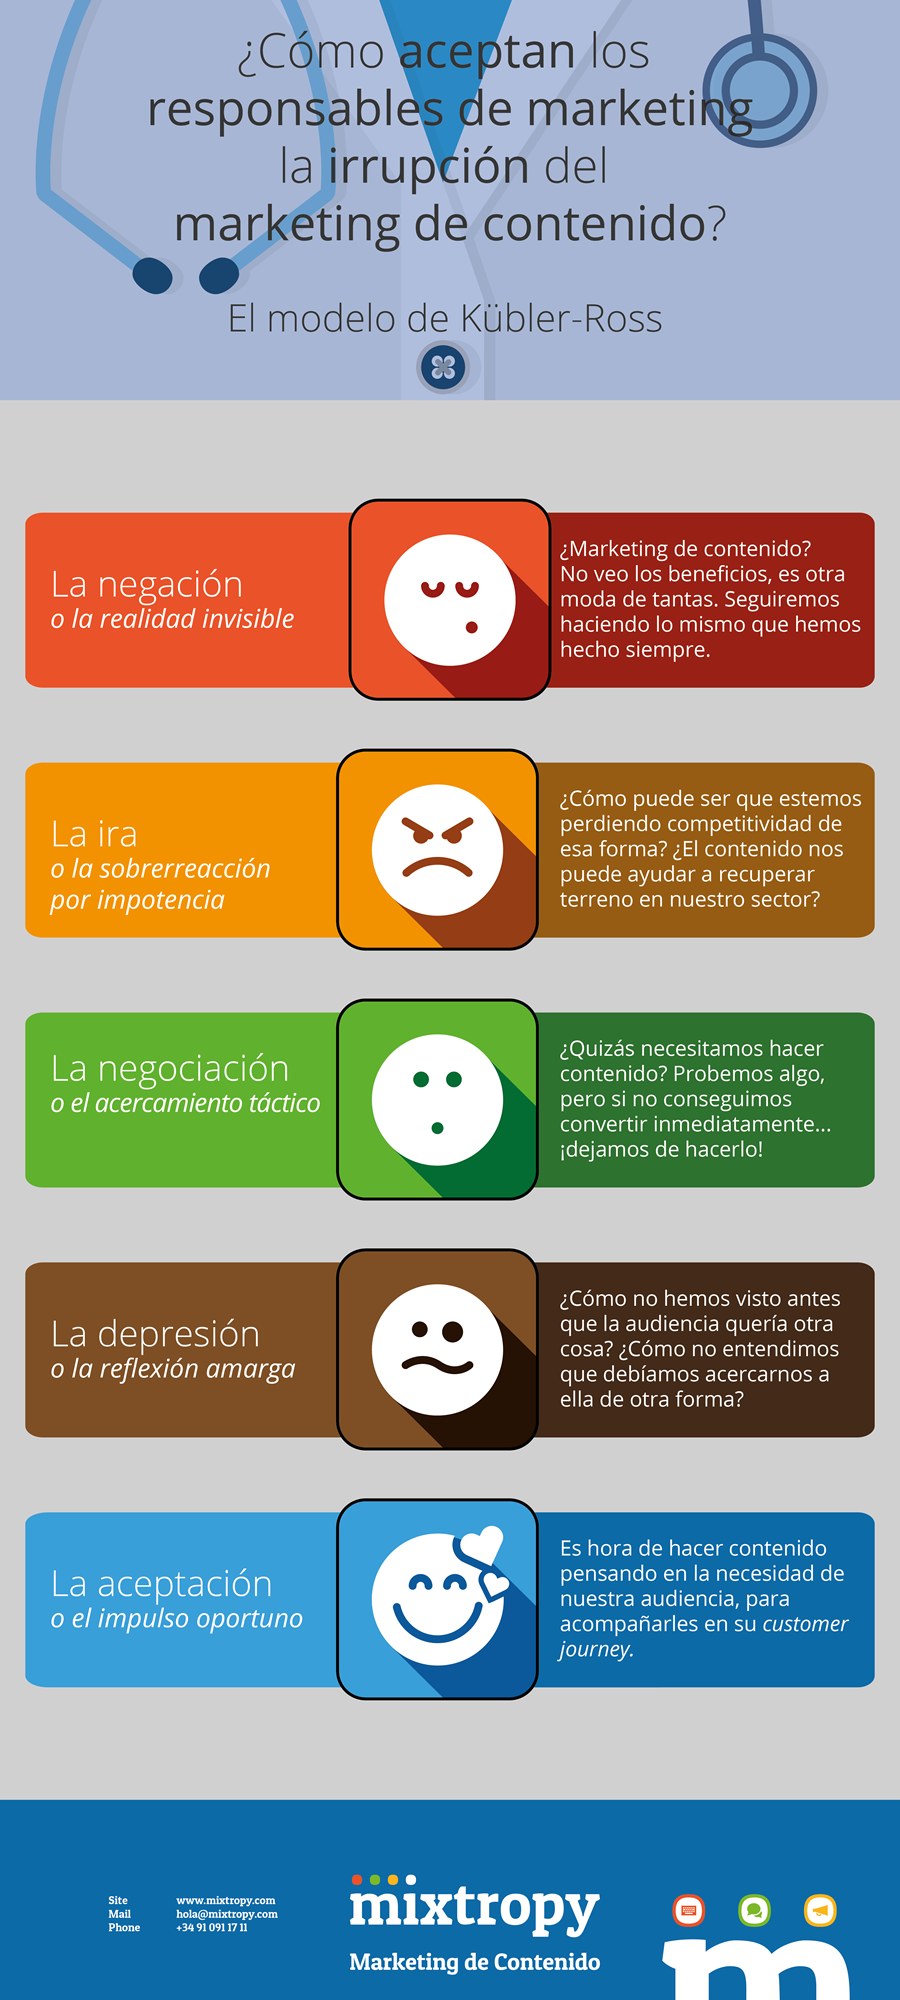 Responsables de Marketing y marketing de contenidos (Modelo Kübler-Ross) #infografia #marketing